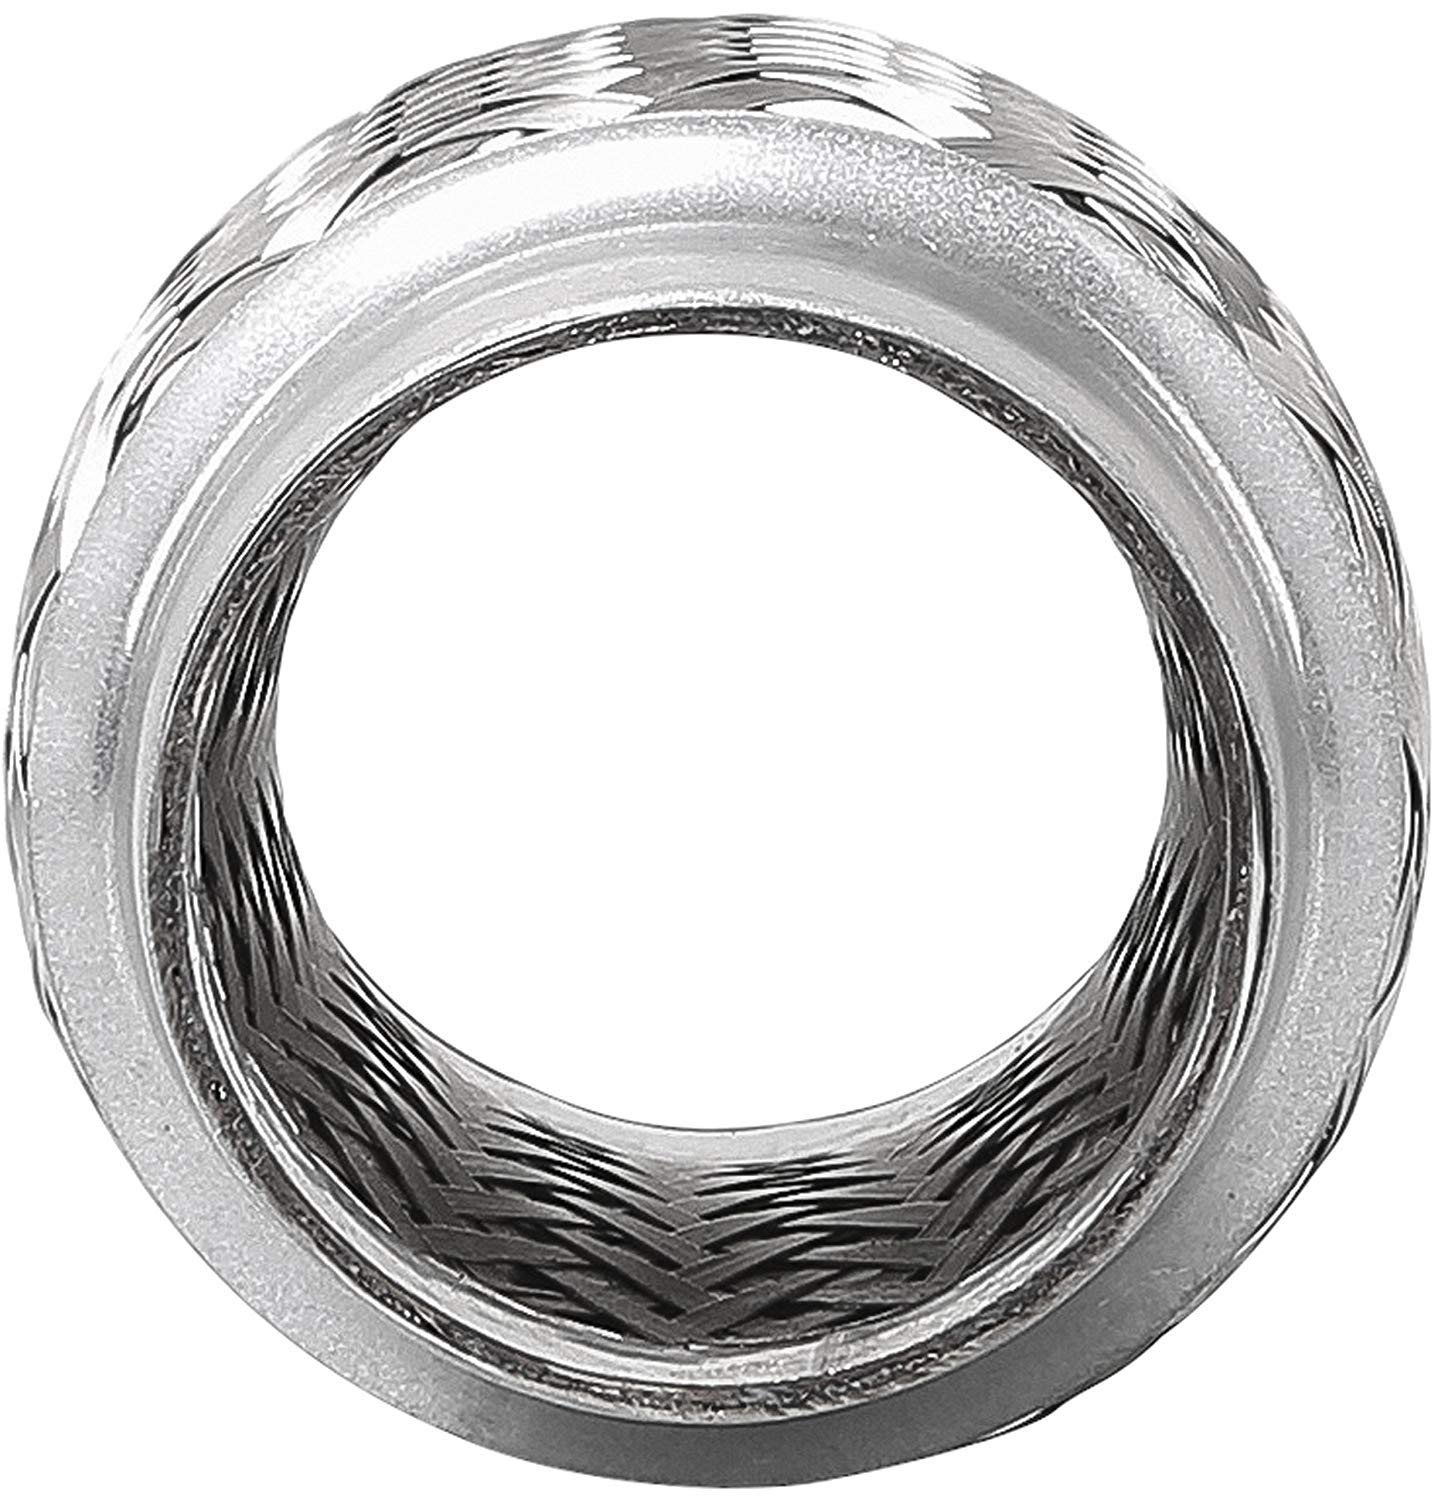 TOTALFLOW TF-76100 Stainless Steel Double Braided Exhaust Flex Pipe-3 ID x 4 OAL-Without Extensions